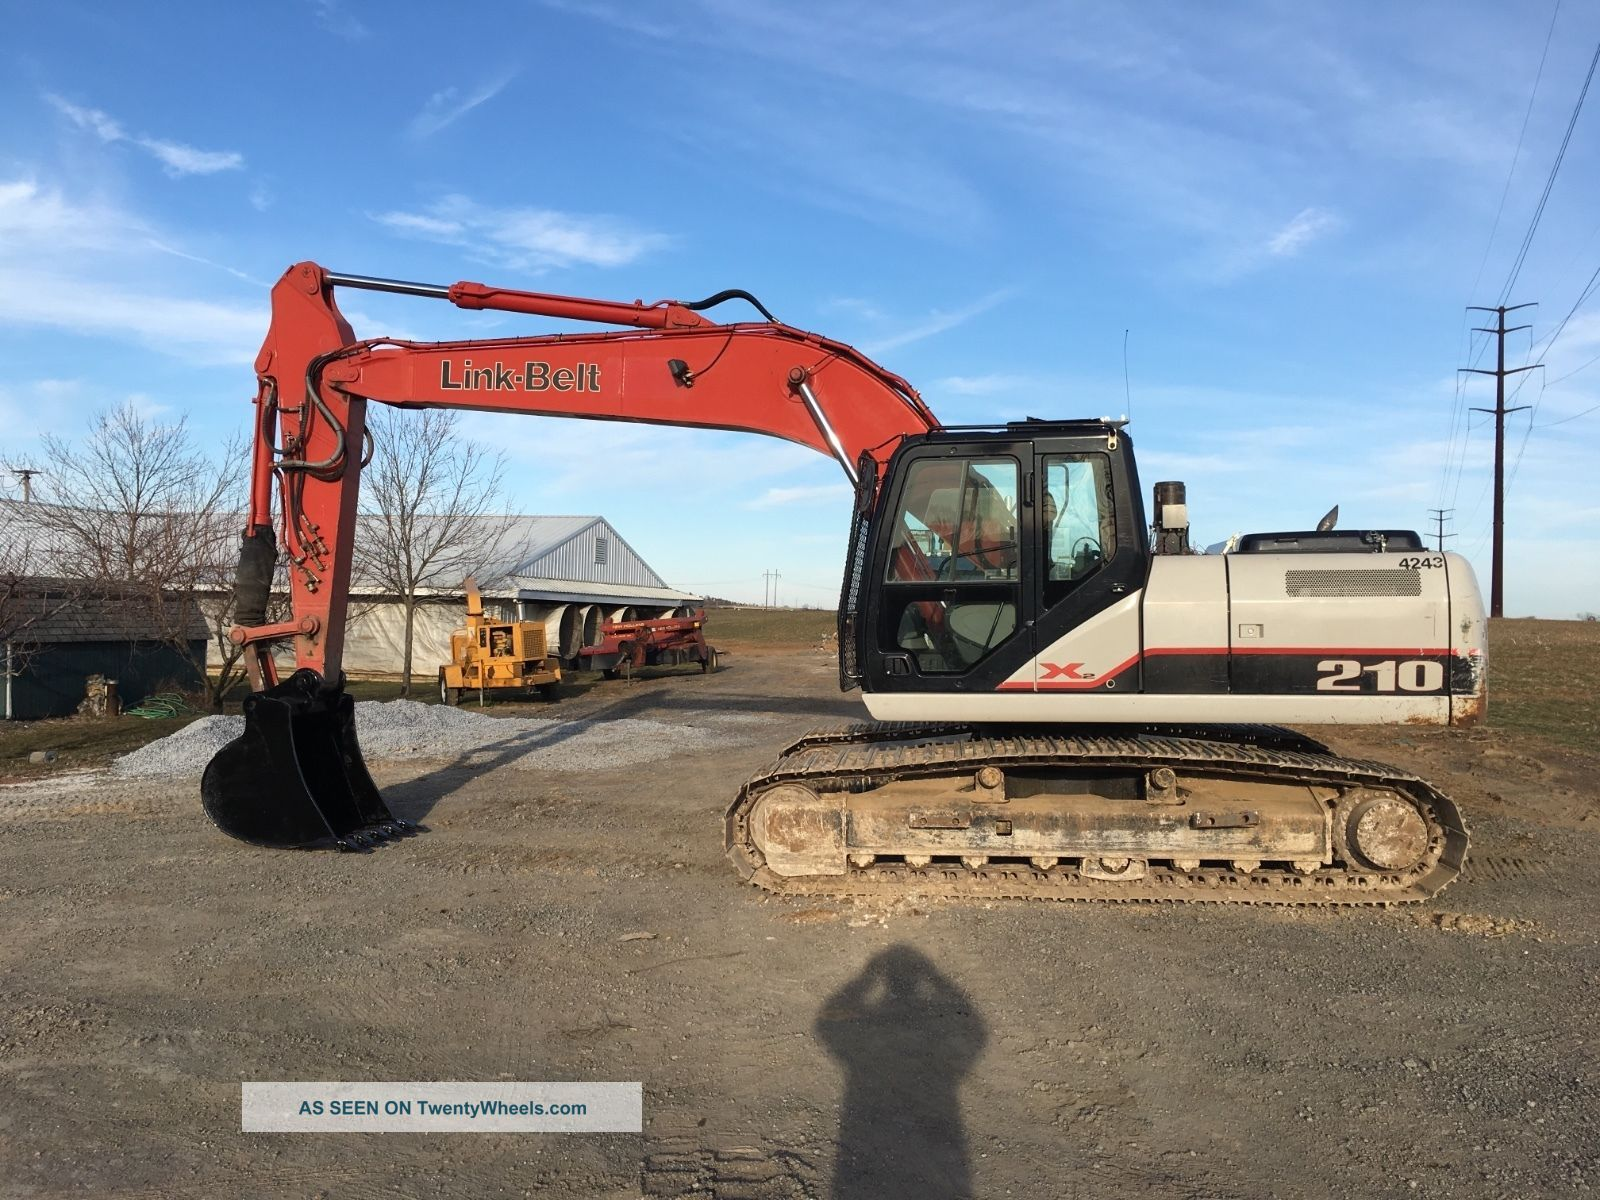 2011 Linkbelt 210x2,  1900 Hrs,  Video Financing Available Excavators photo